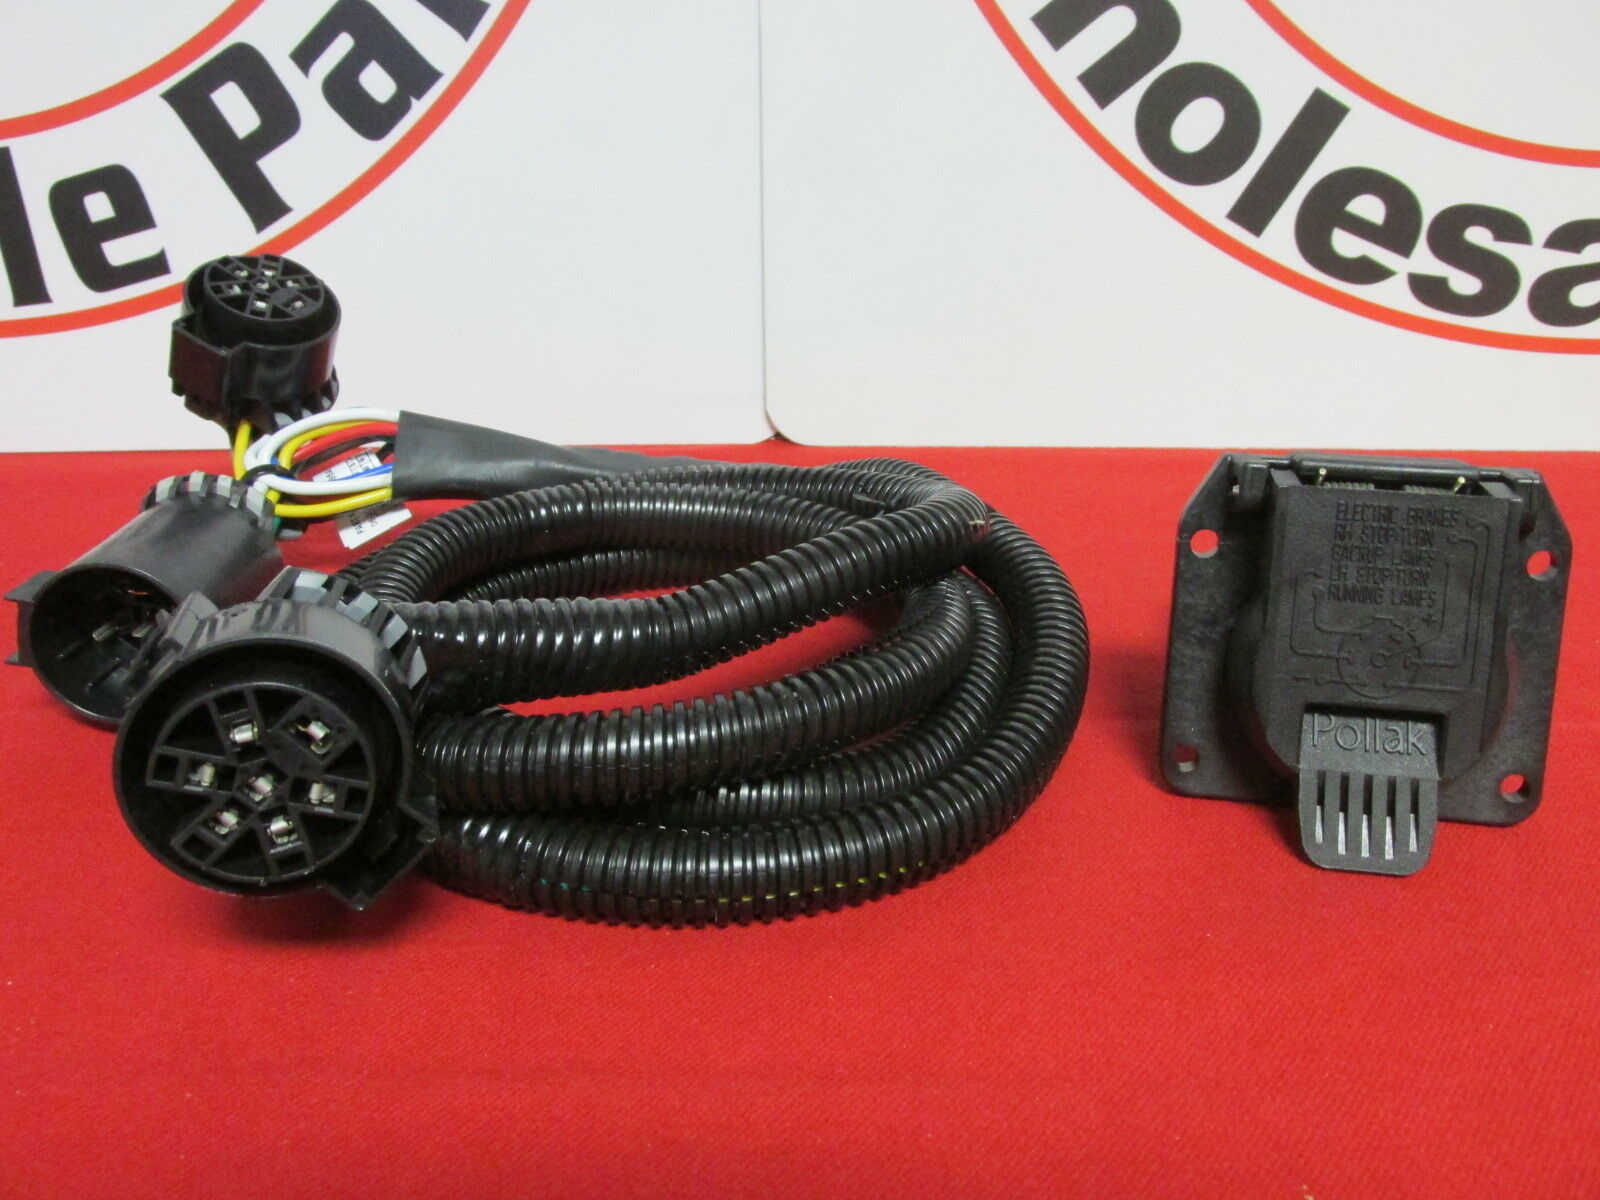 hight resolution of dodge ram 2500 3500 5th wheel gooseneck in bed wiring harness kit new oem mopar